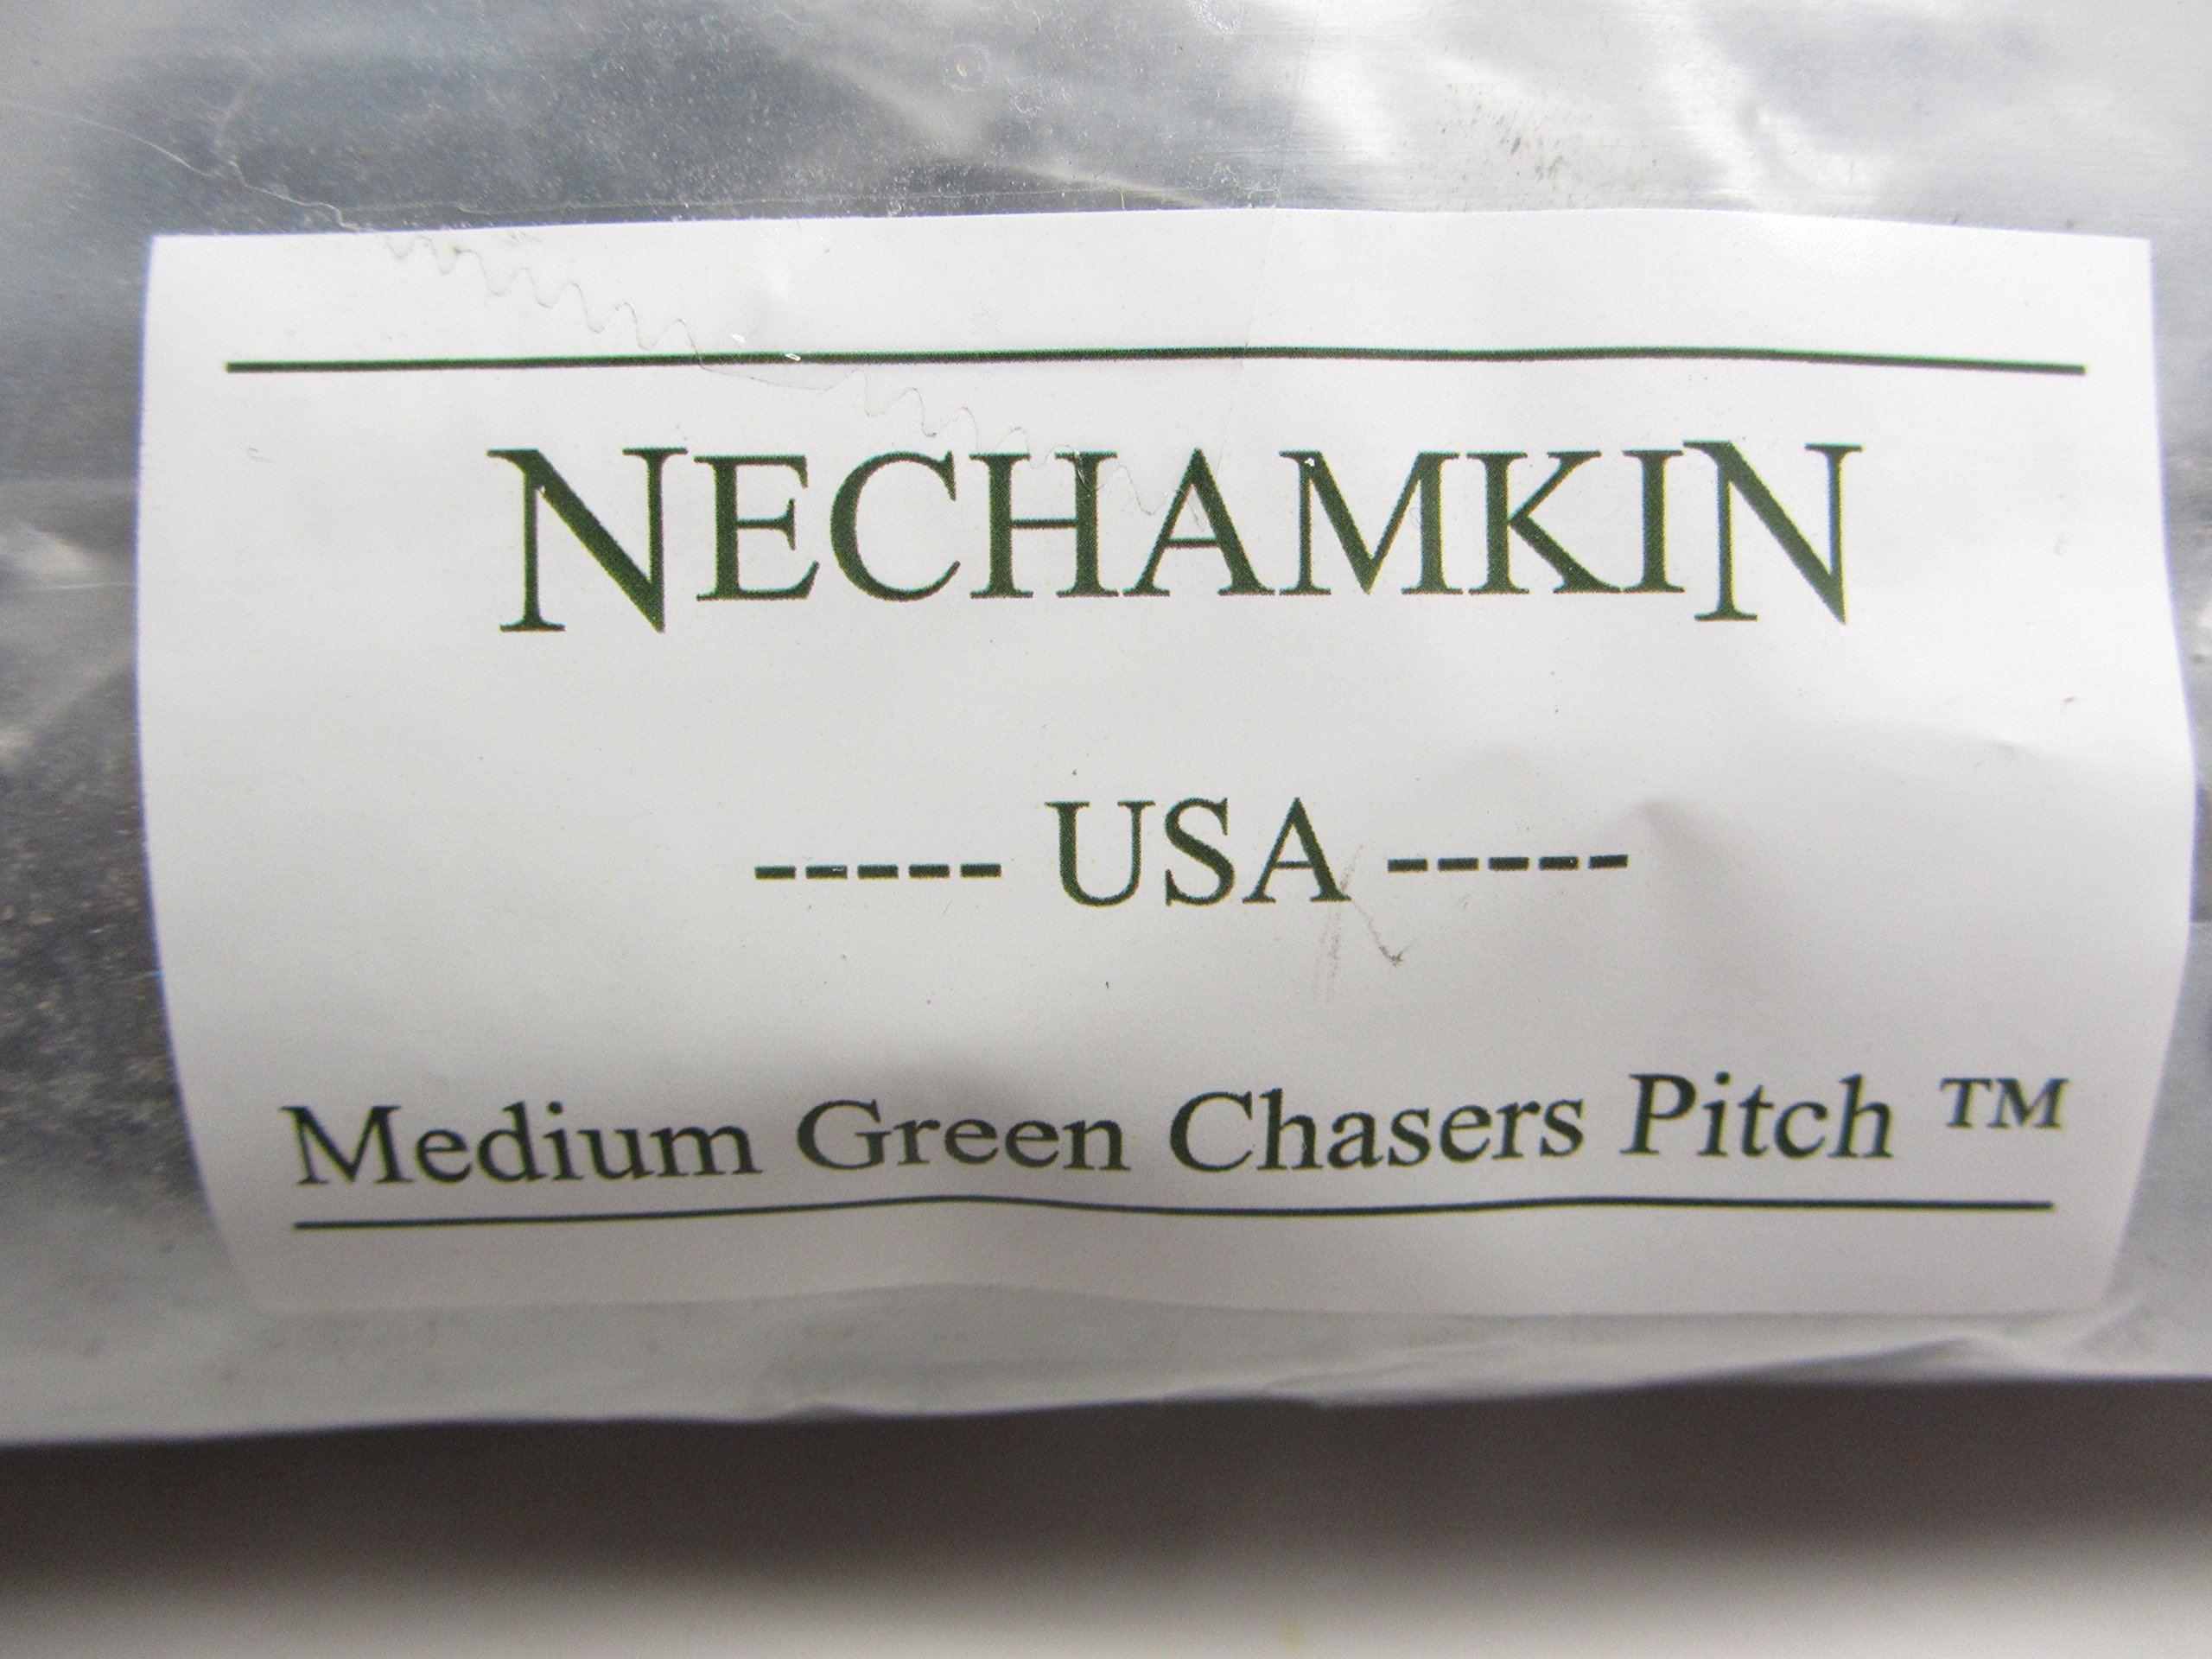 Nechamkin Medium Green Chaser's Pitch (5 lb) by UJ Ramelson Co (Image #4)